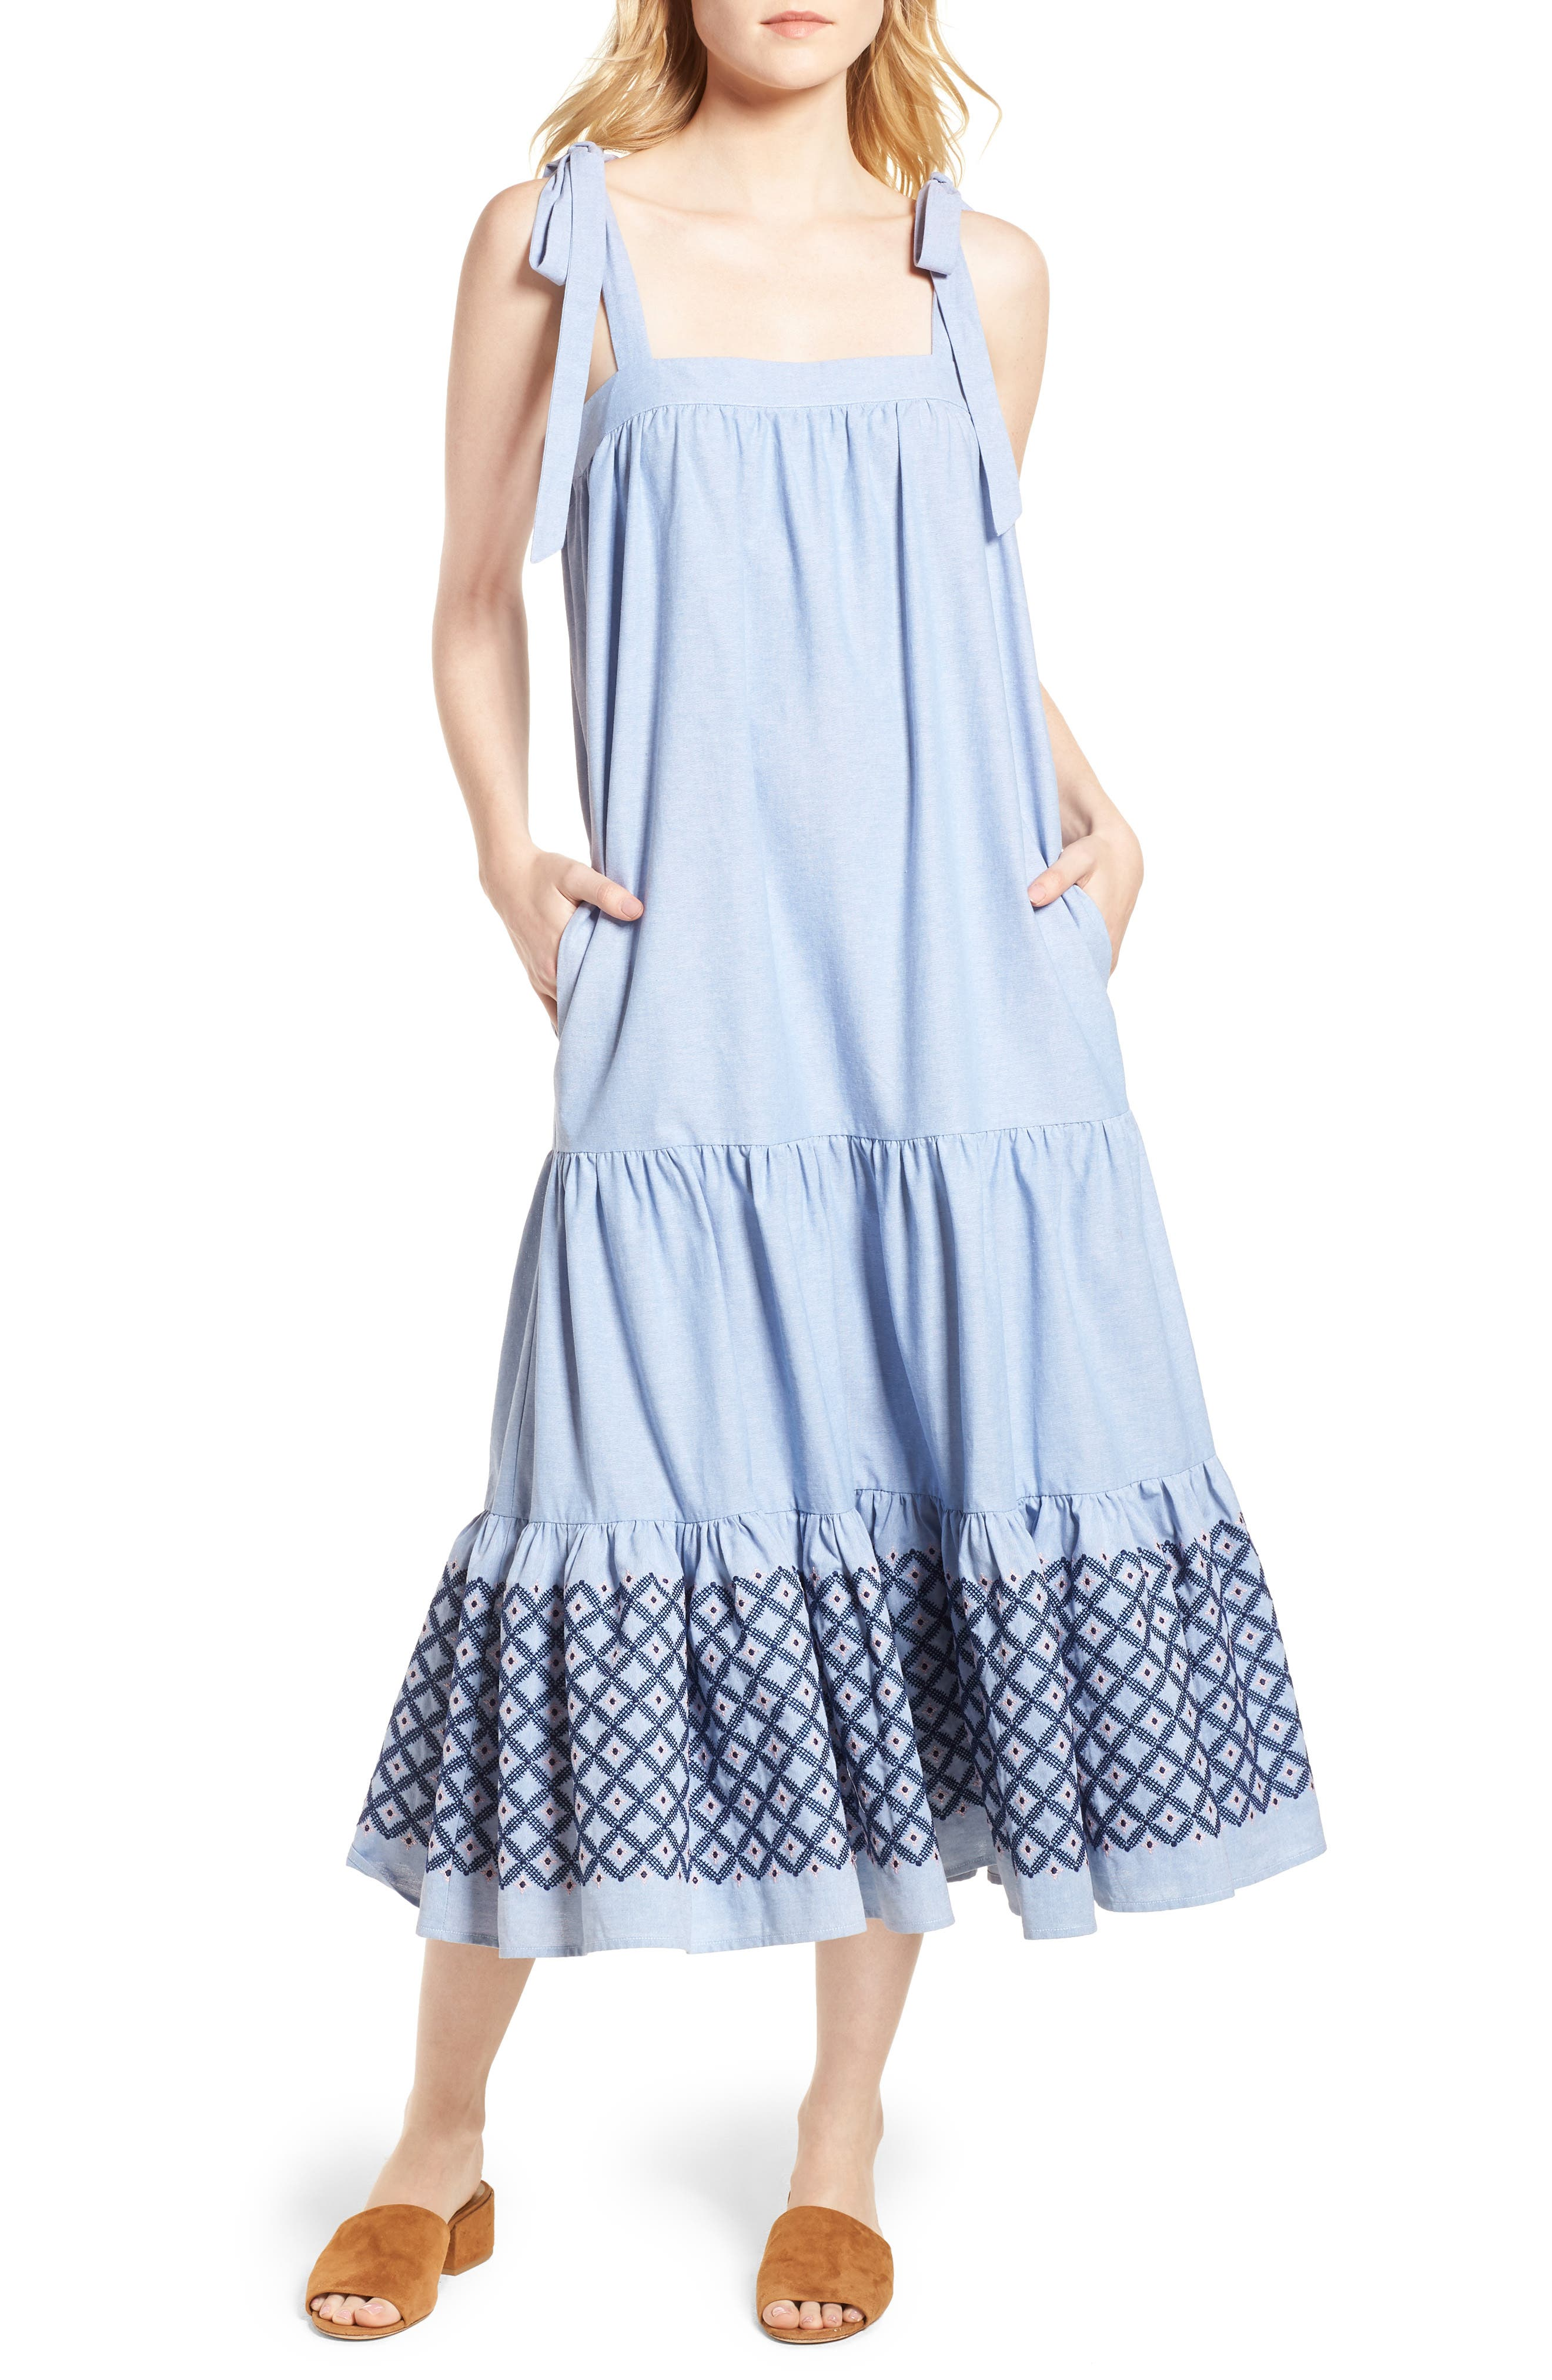 Lucy Dress,                             Main thumbnail 1, color,